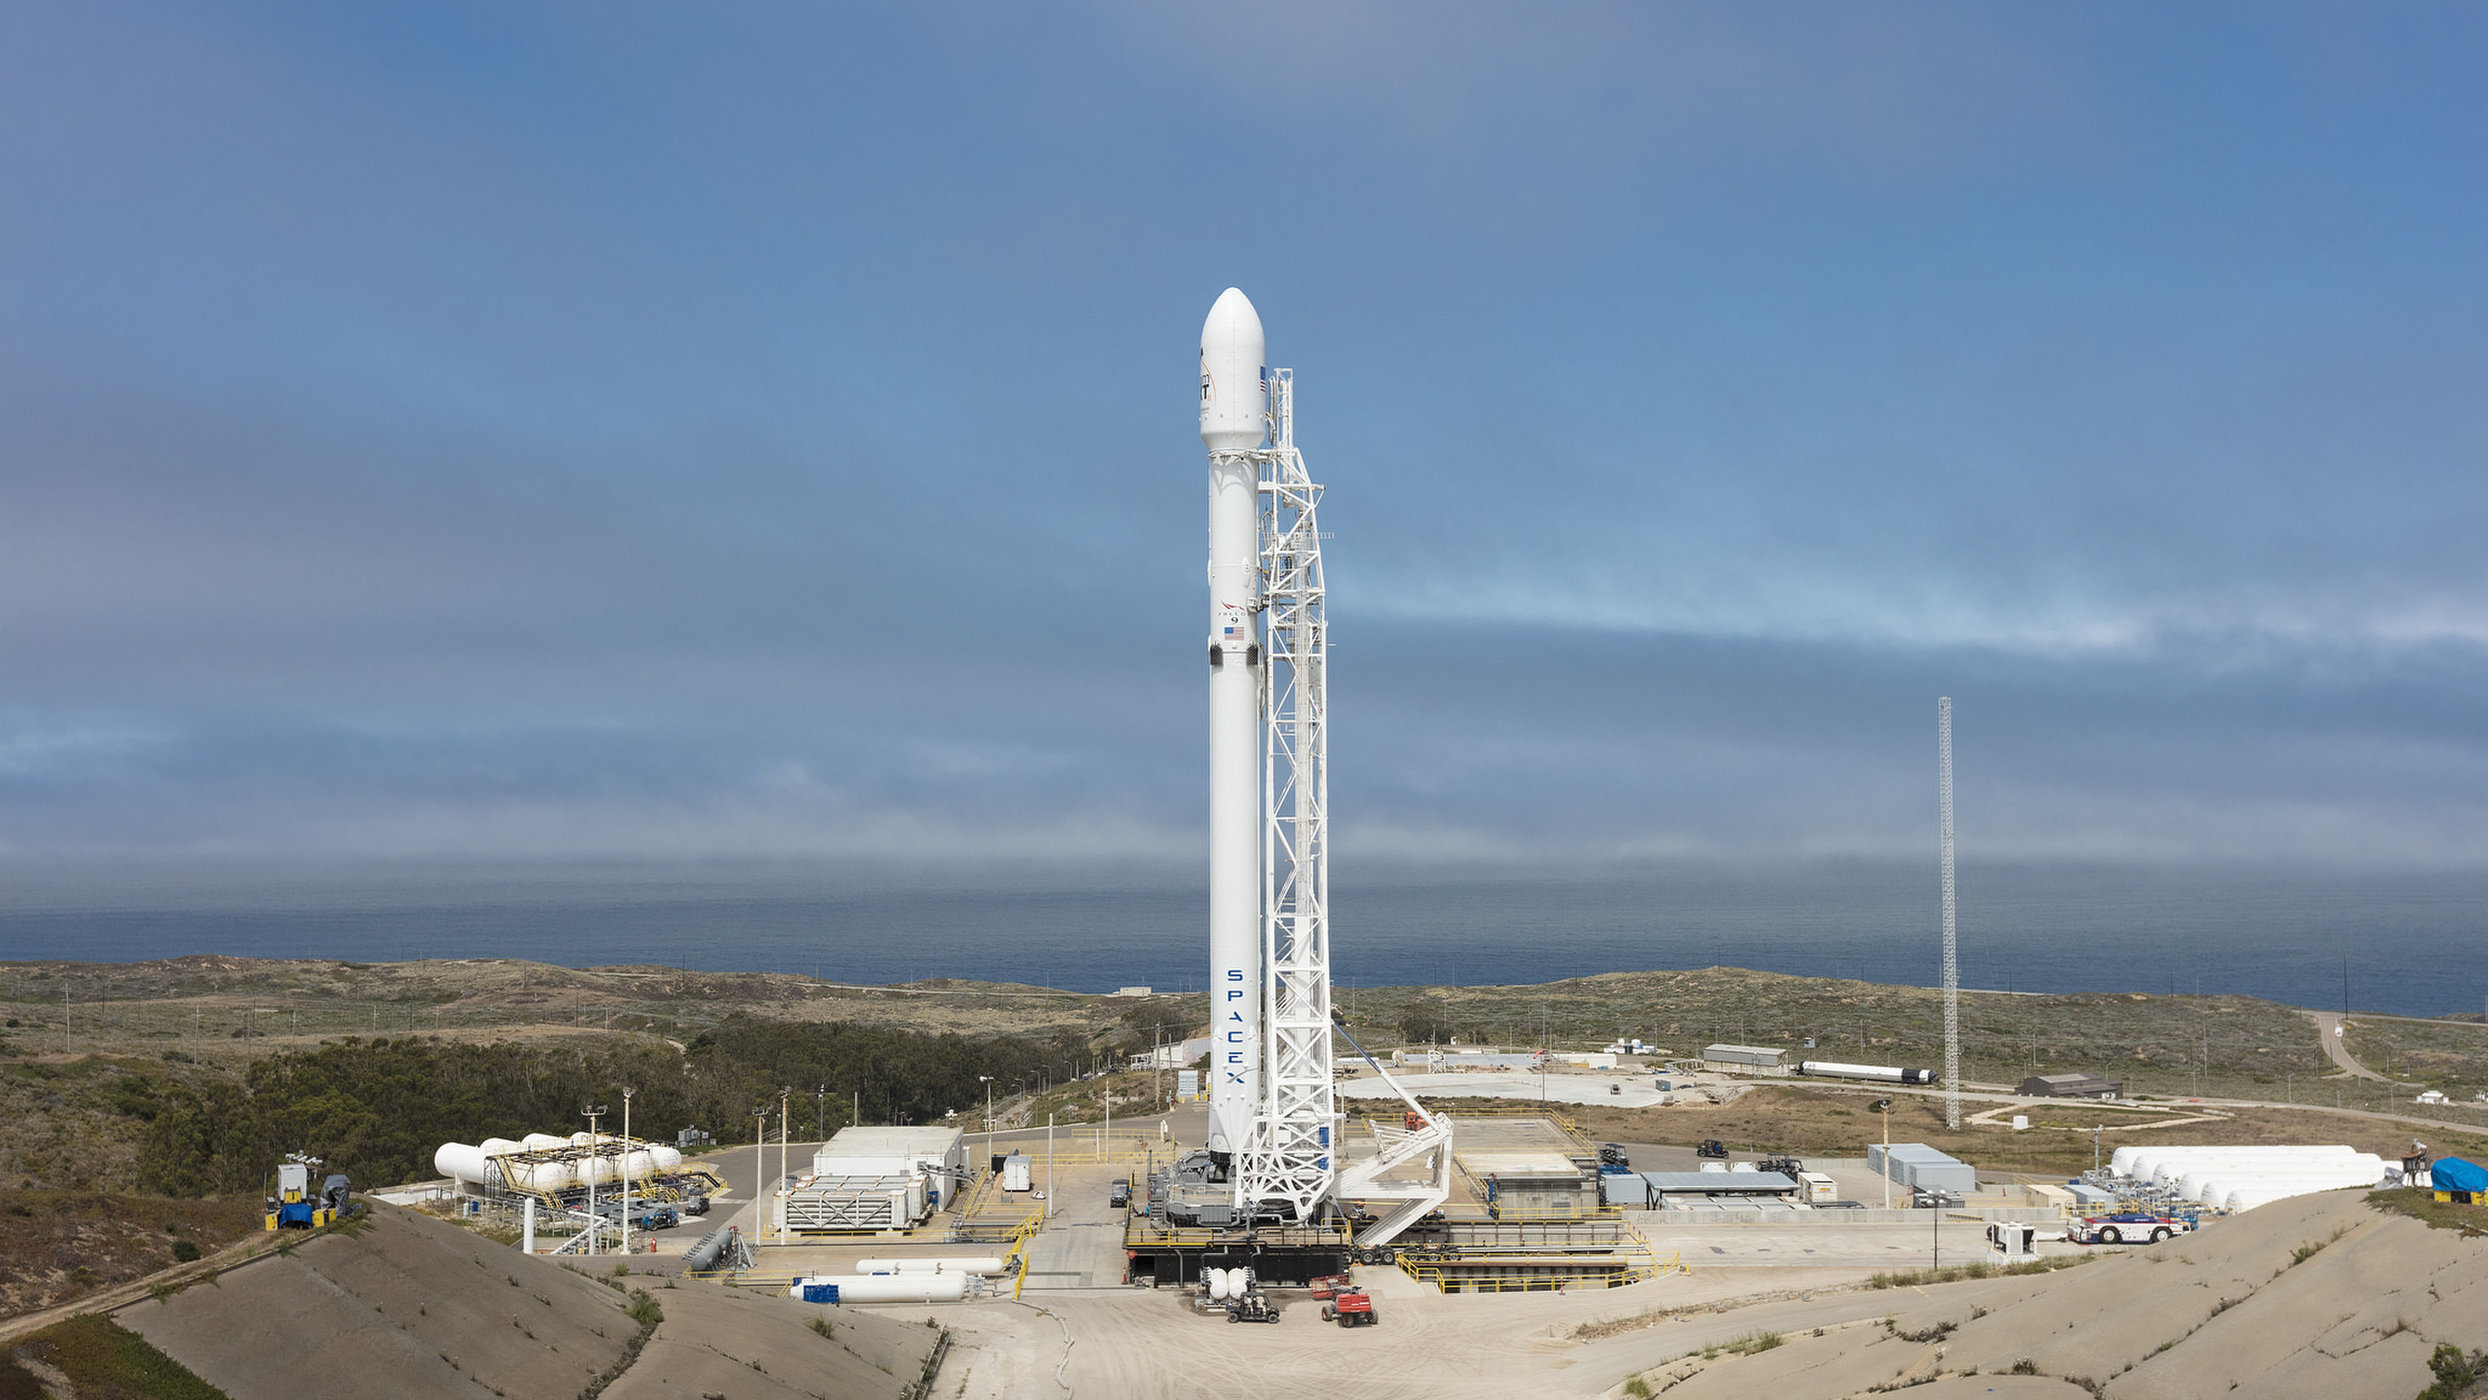 SpaceX Rocket to Launch 10 Satellites Early Monday: How to Watch Live - Space.com